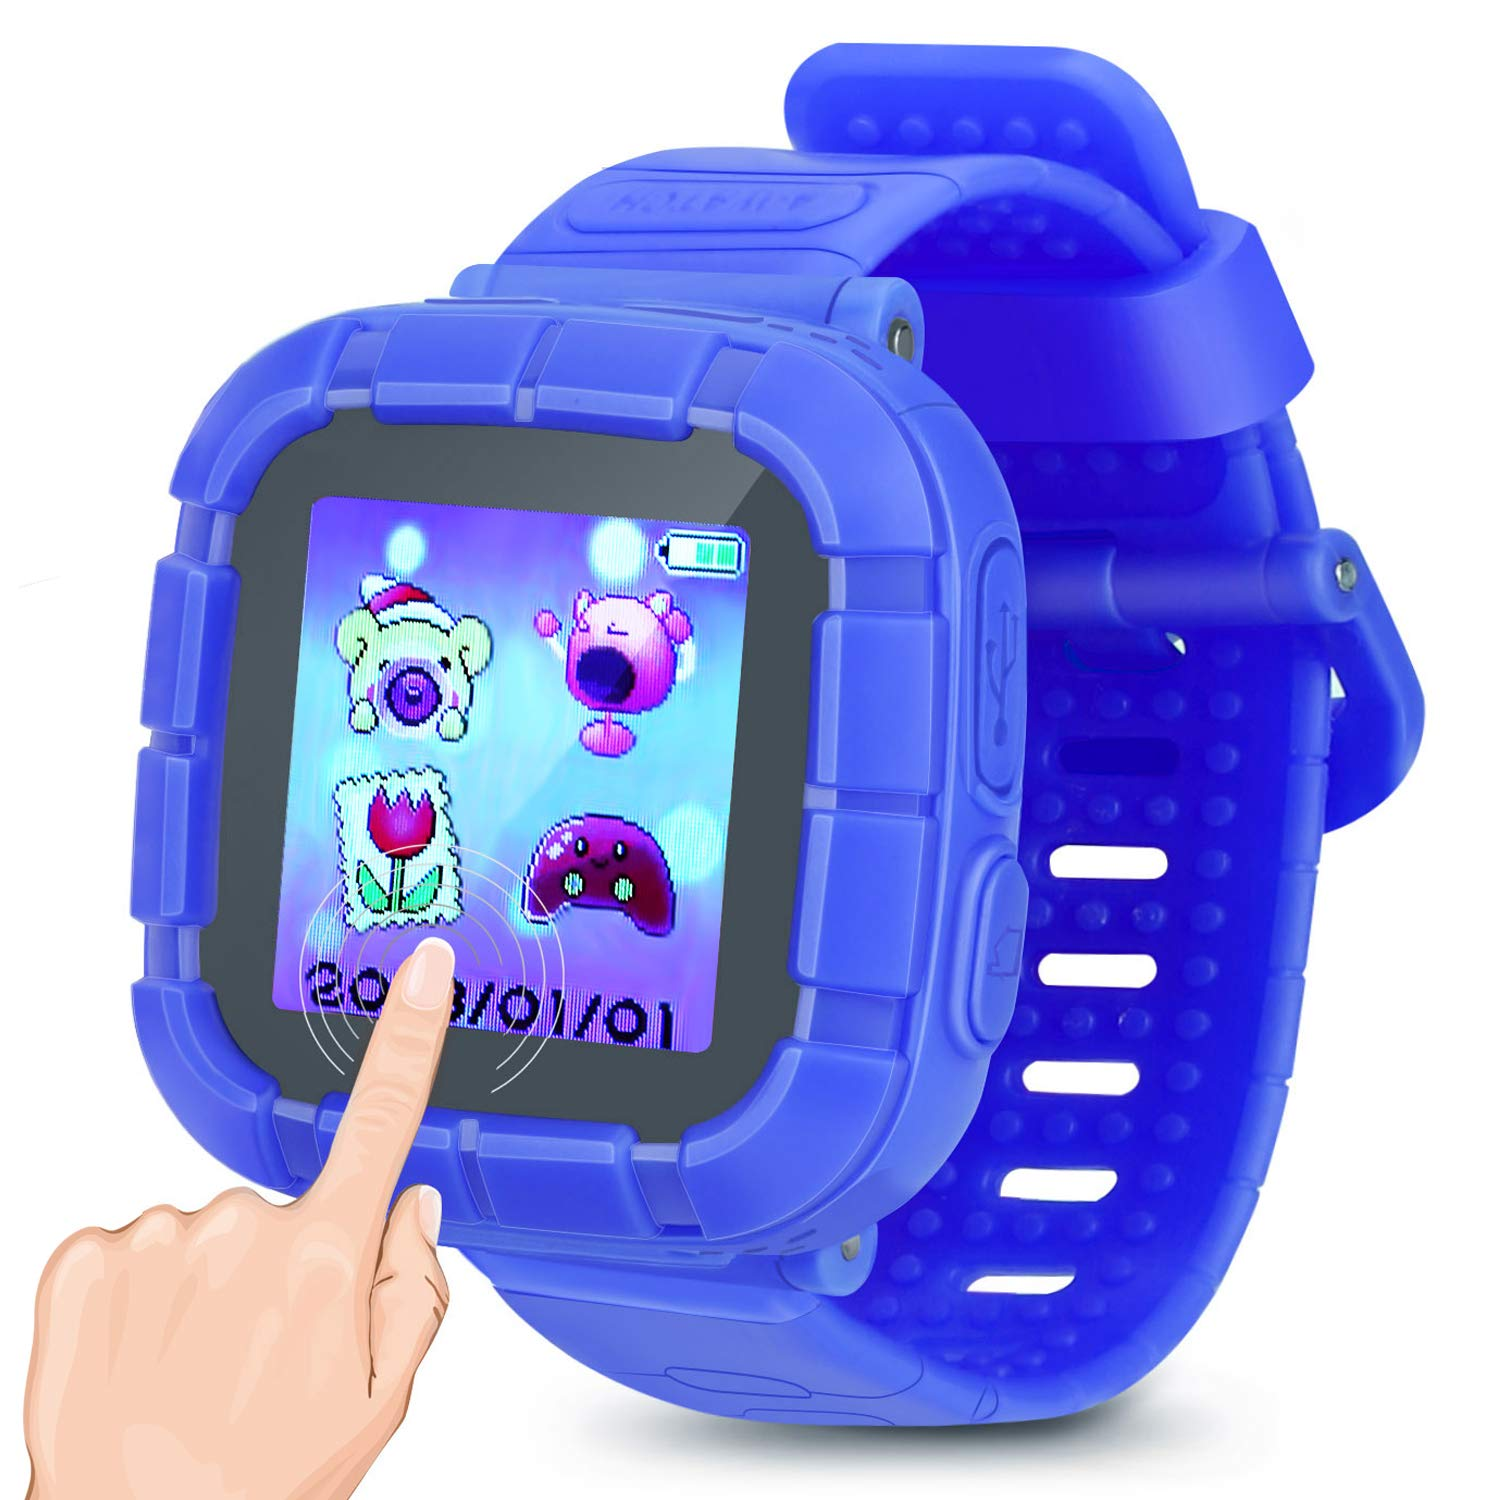 YIHOO Kids Smart Watch Games Smartwatch Touch Screen Watches Camera Timer Clock Pedometer Kids Boys Girls Toys Holiday Birthday Gifts (Blue)